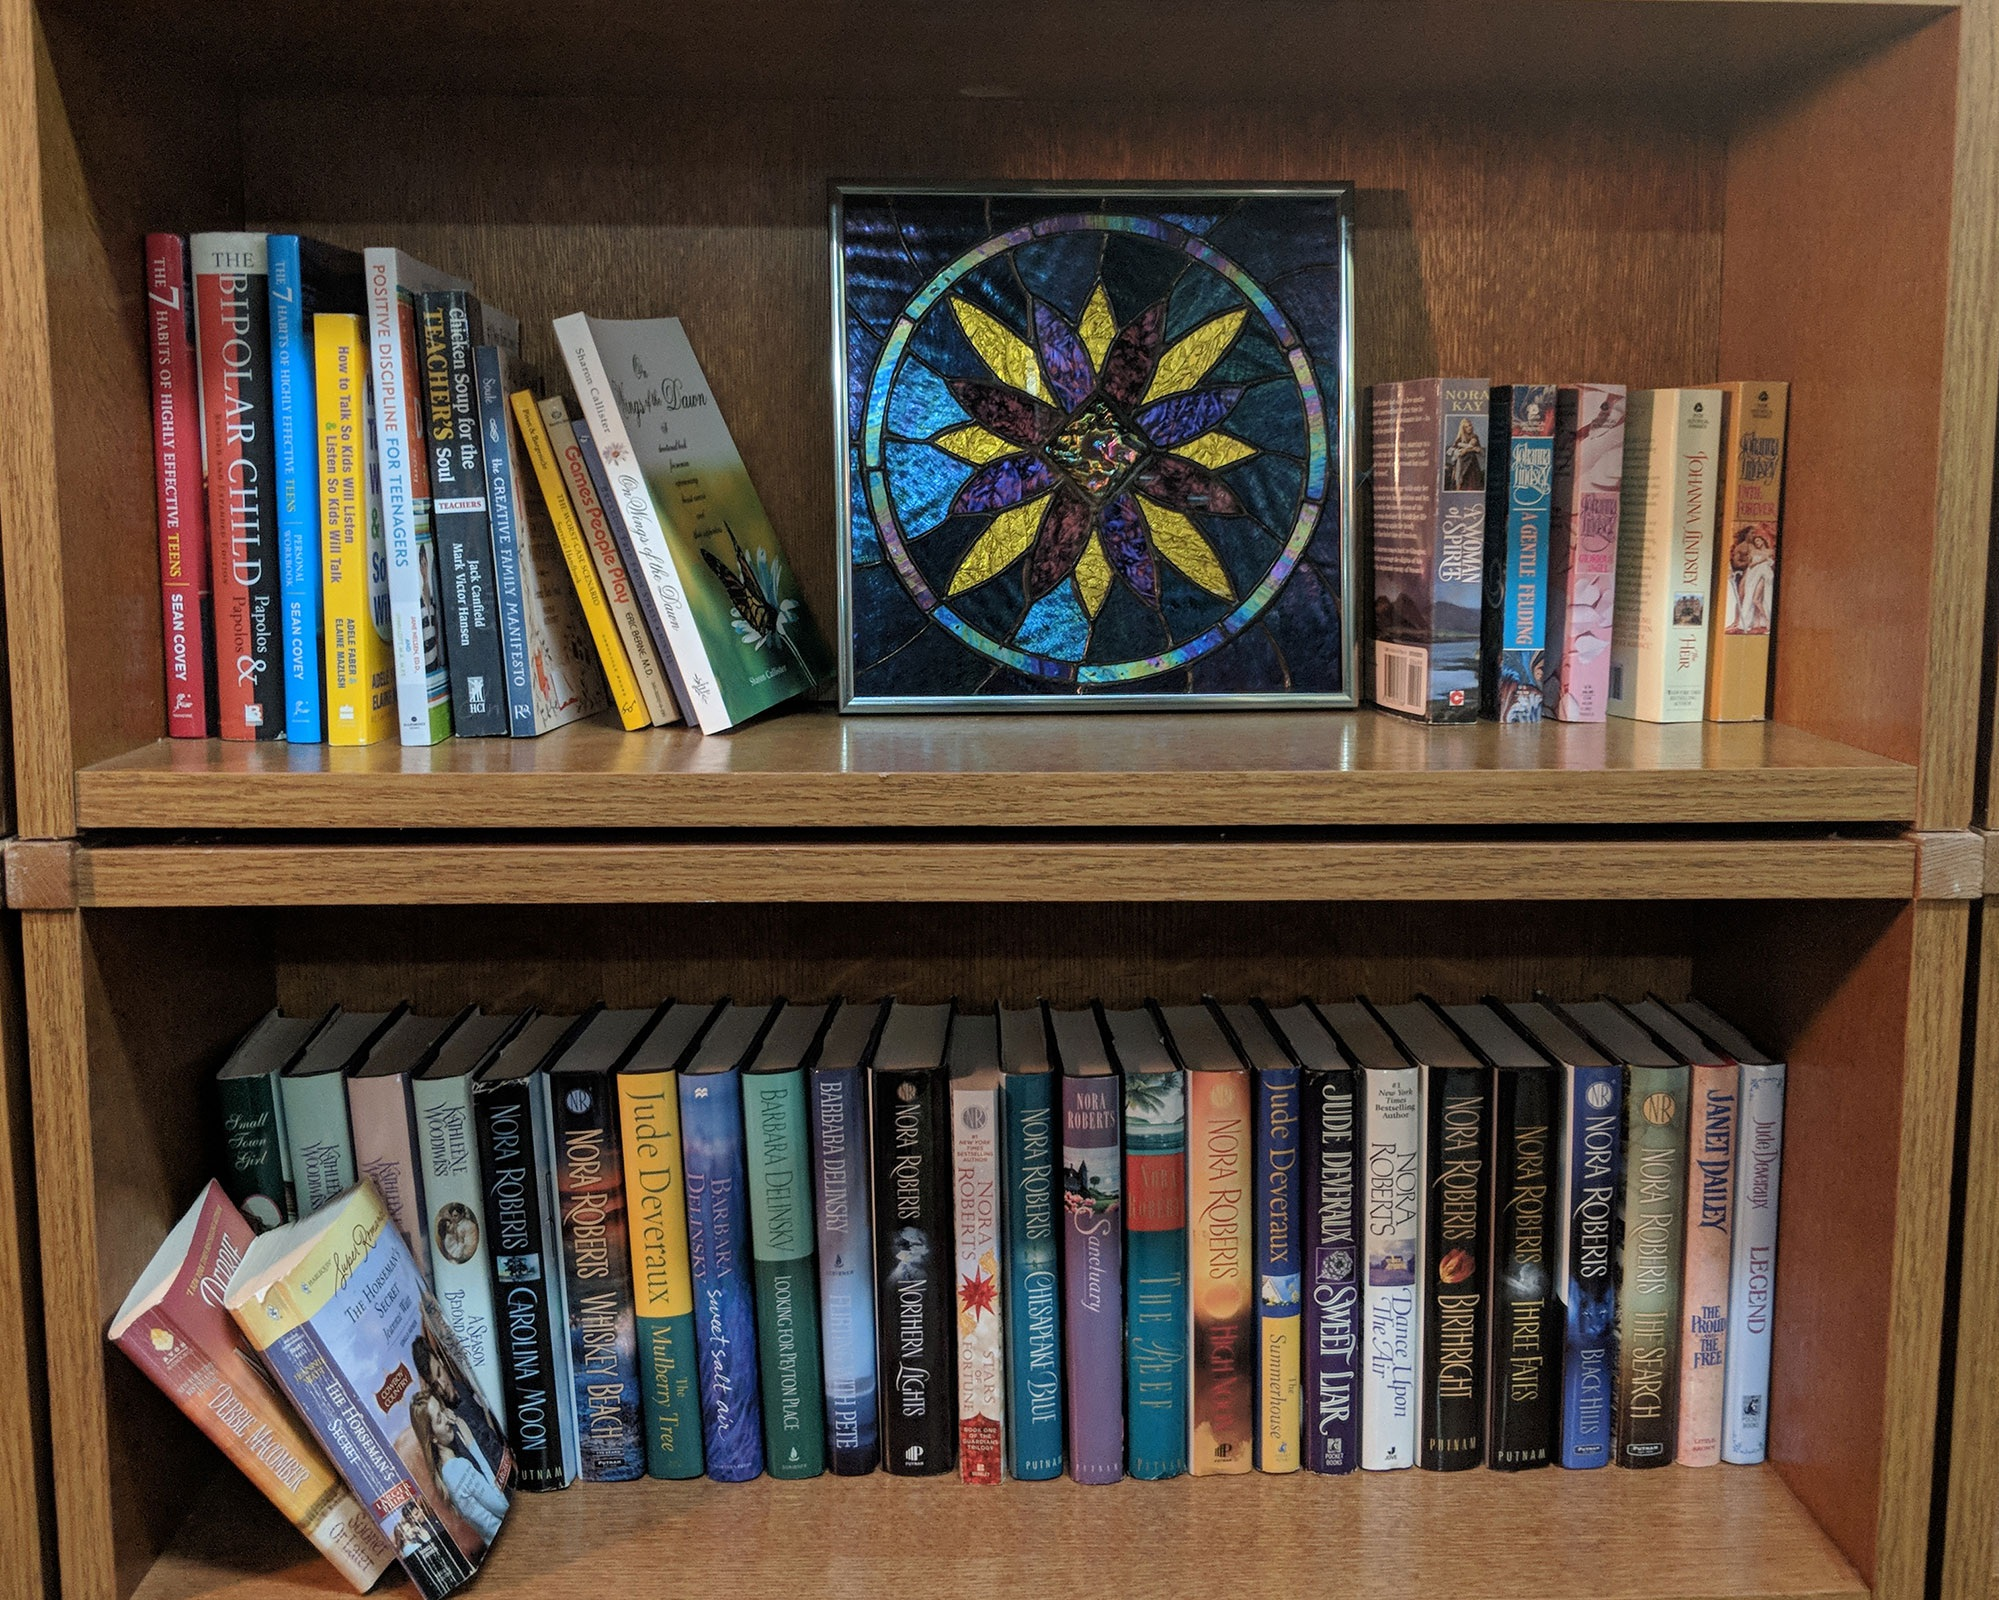 Bookstore - A selection of used hard covers, paperbacks, & coffee table books